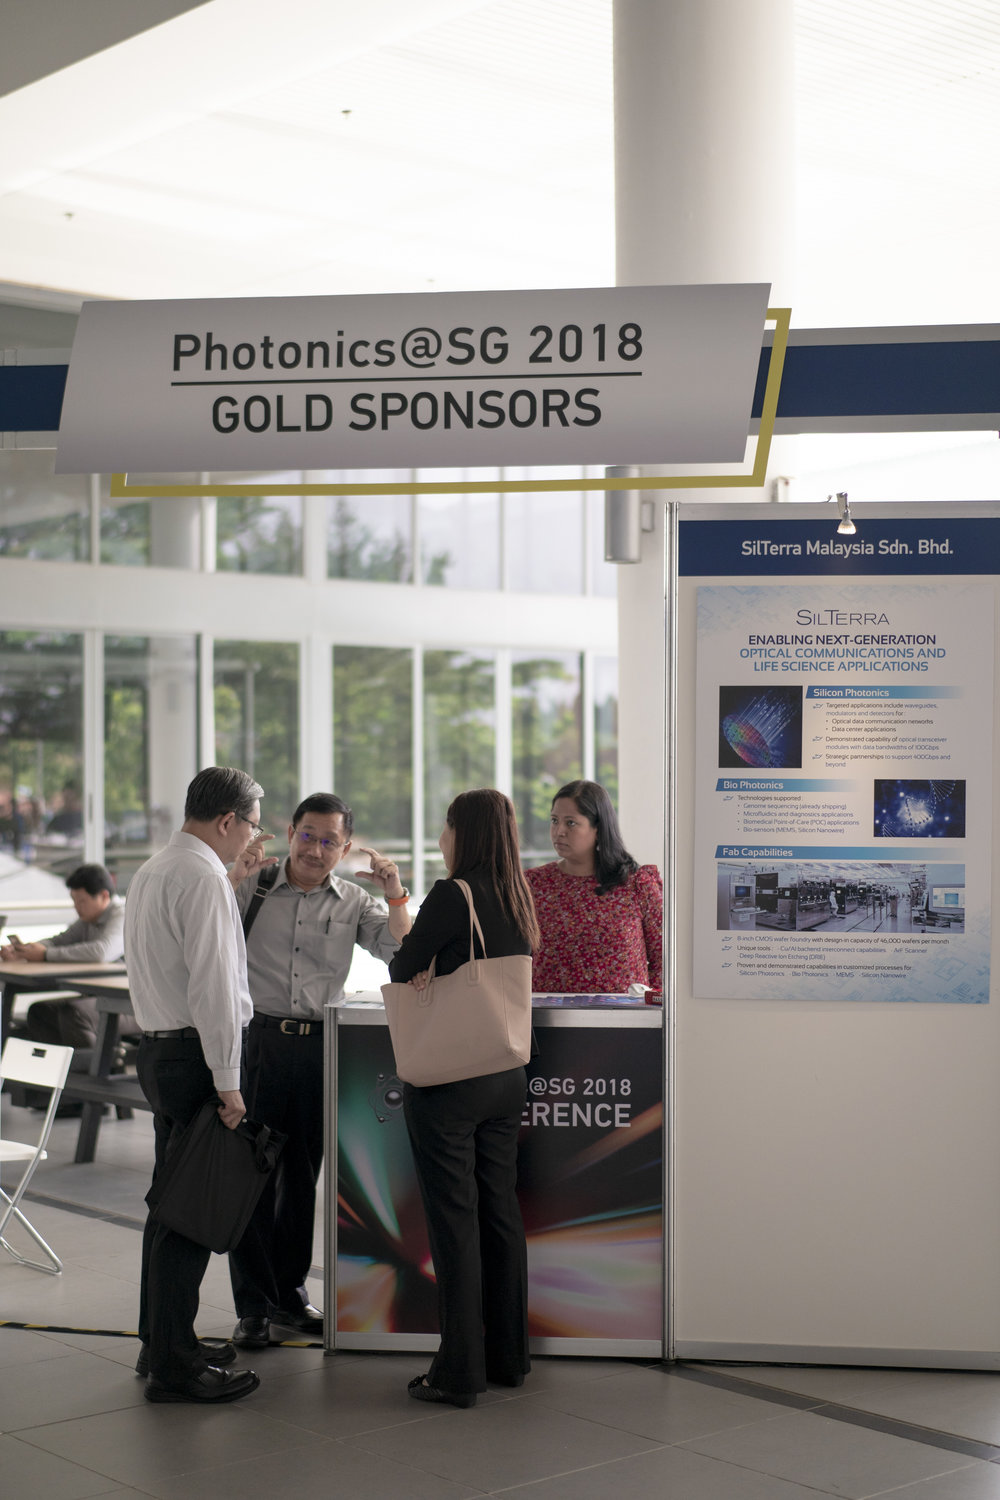 TPI Photonics SG 2018 Conference n Exhibition 0213rc.jpg